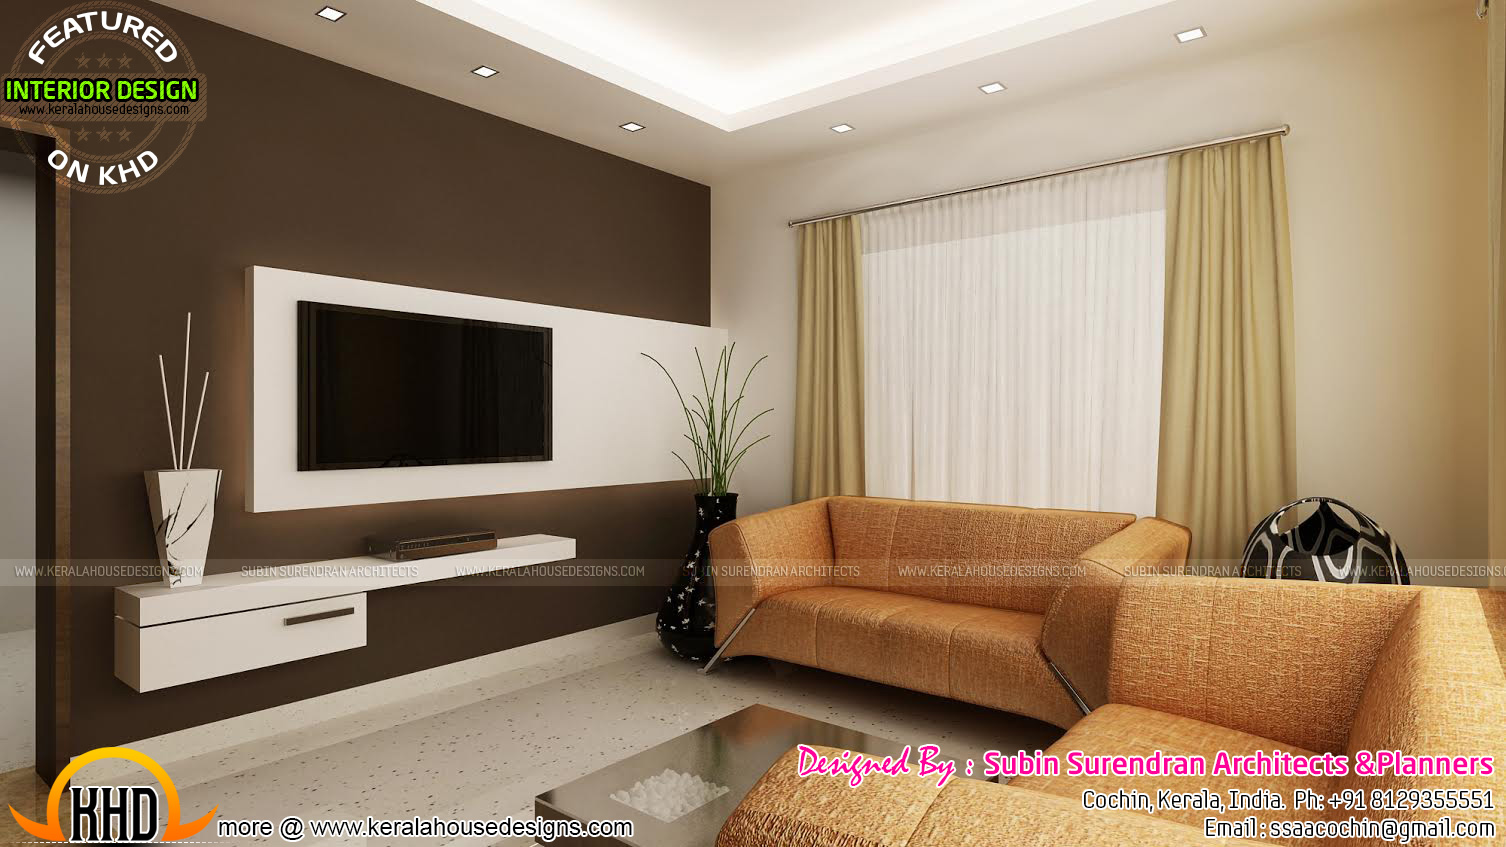 Living rooms modern kitchen interiors in kerala kerala home design and floor plans Living room interior designs images